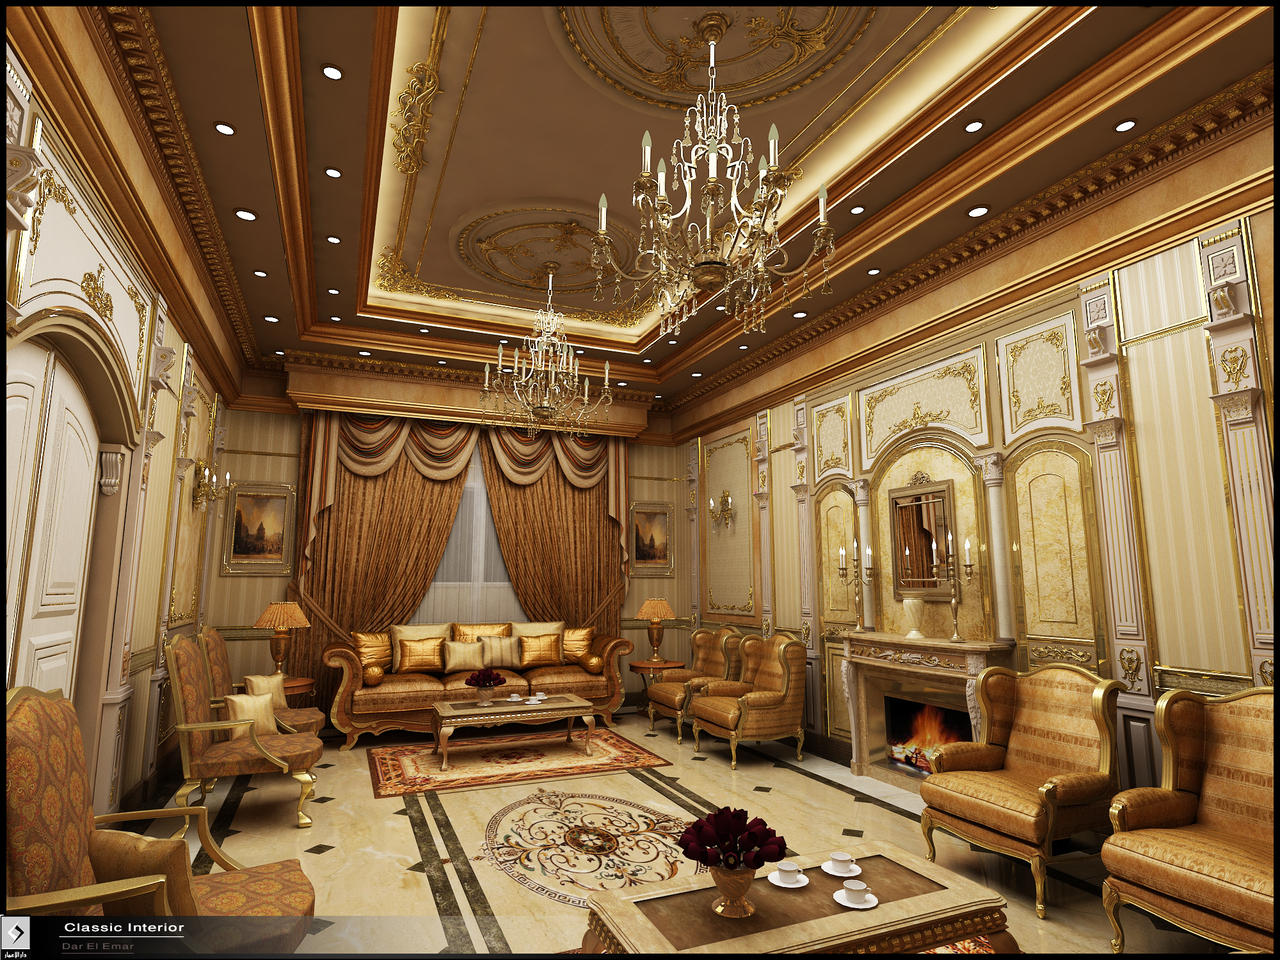 Classic Interior In Ksa By Amr-Maged On DeviantArt